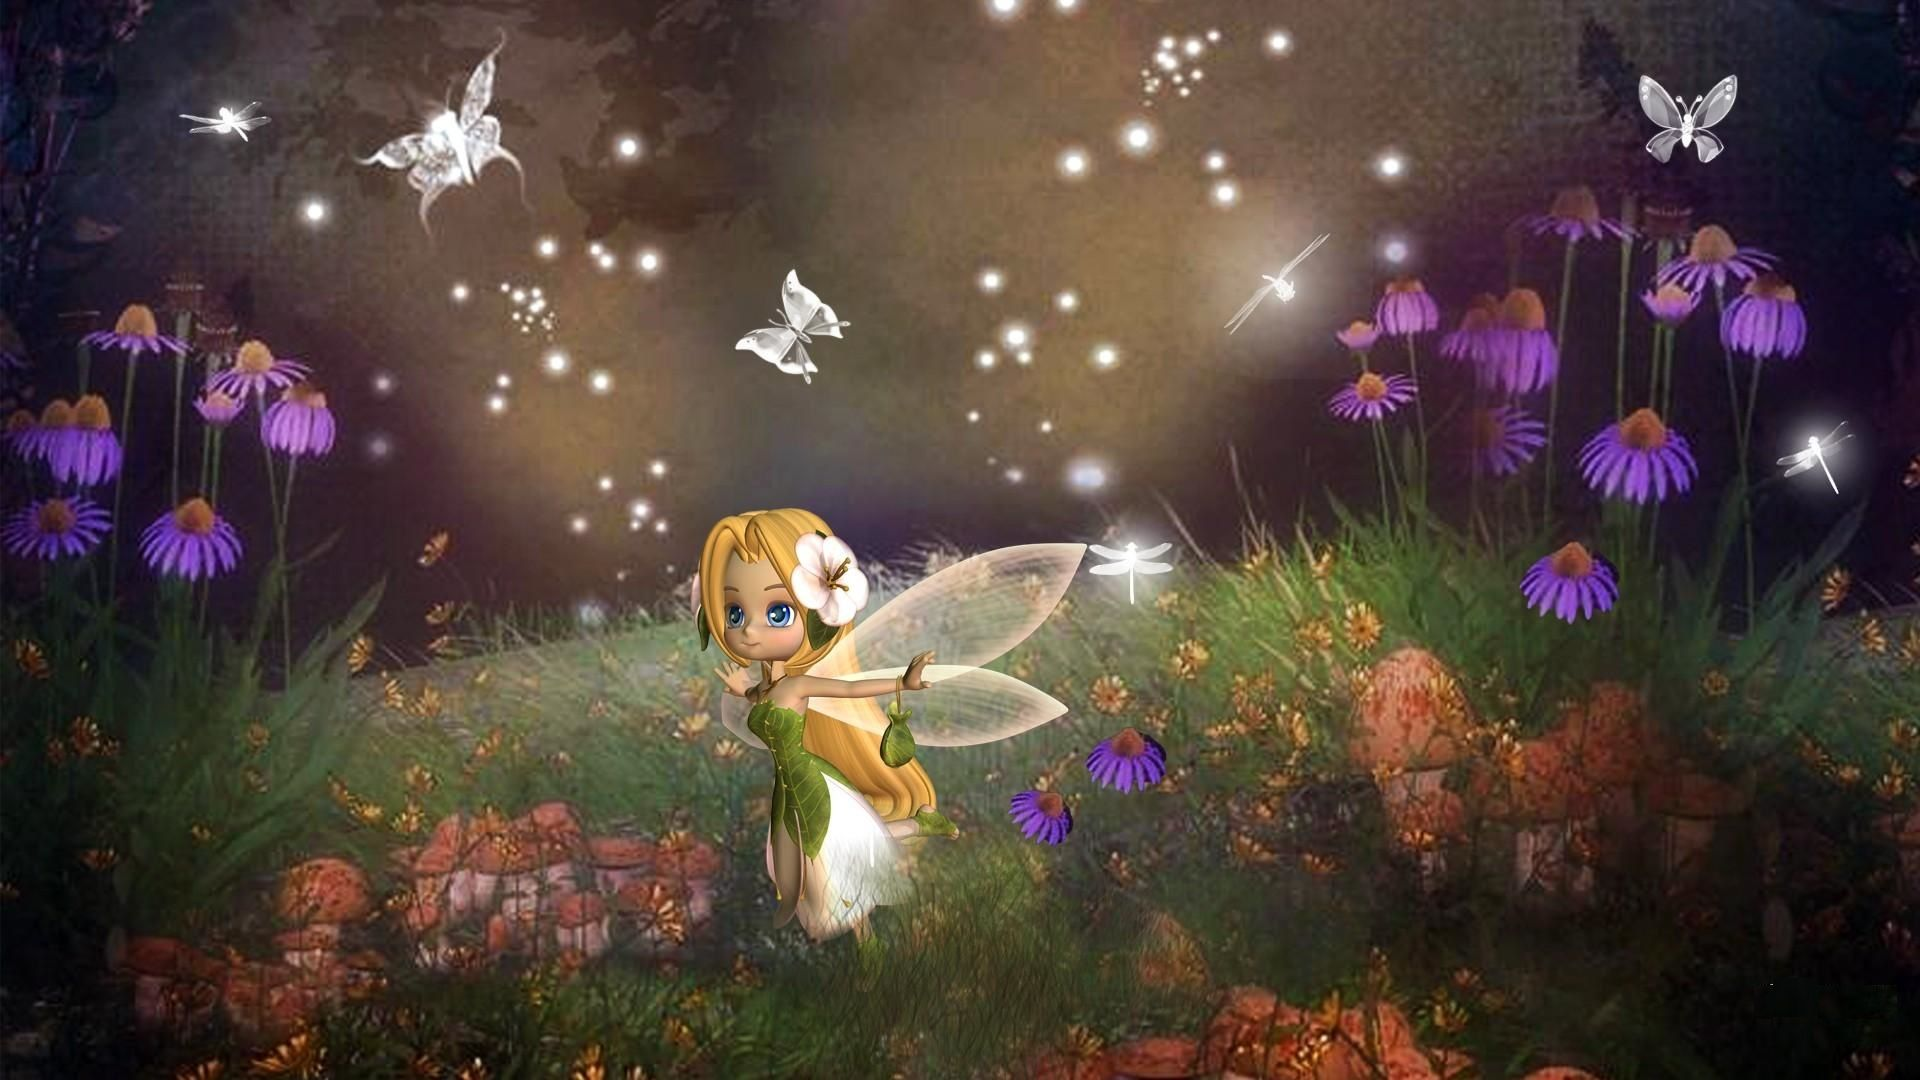 Free animated fairy pictures animated fairies wallpapers free animated fairy pictures animated fairies wallpapers altavistaventures Image collections